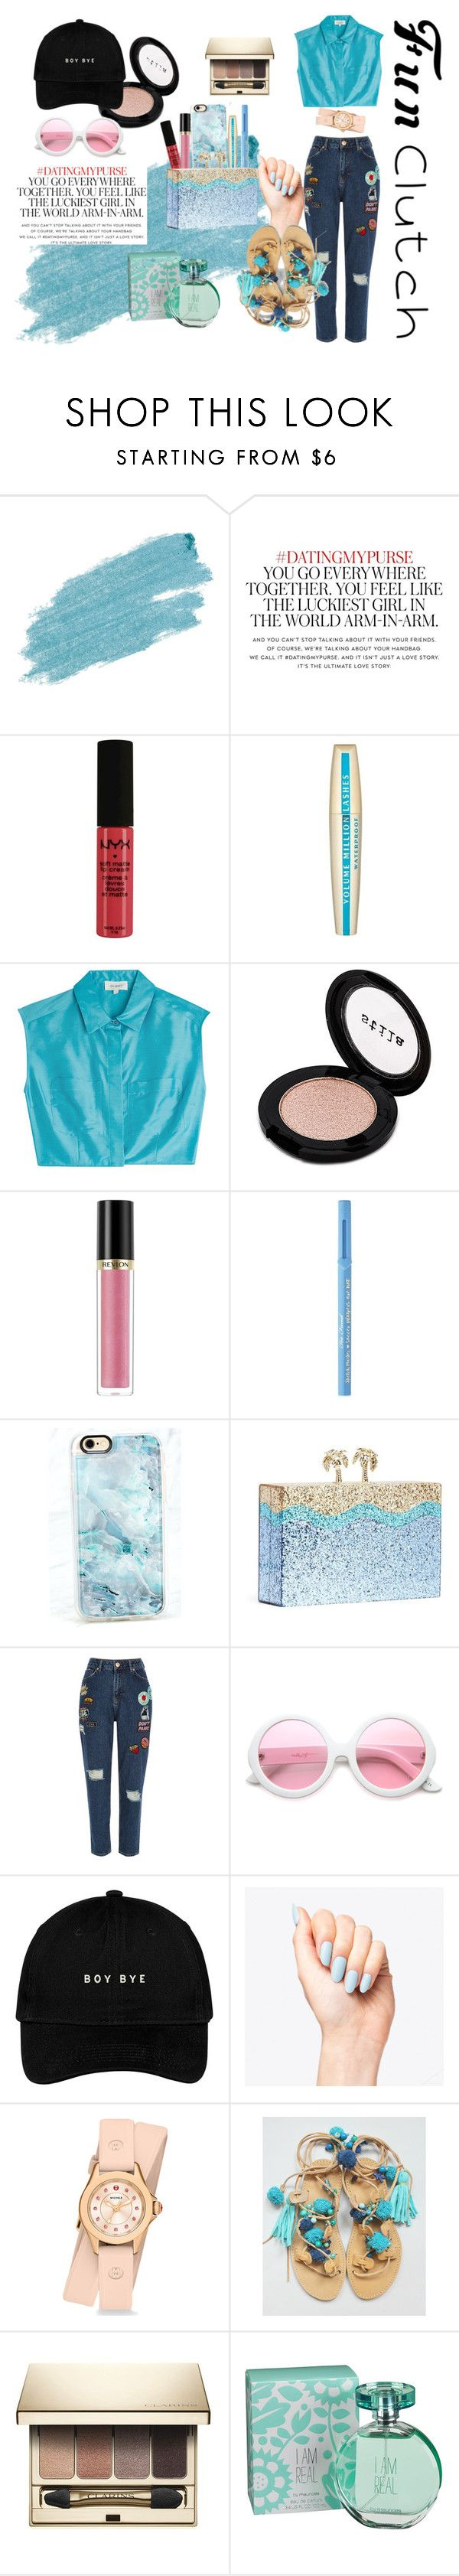 """In Yo Clutch!"" by blackheaven on Polyvore featuring Jane Iredale, Kate Spade, NYX, L'Oréal Paris, Isa Arfen, Stila, Revlon, Too Faced Cosmetics, Casetify and River Island"